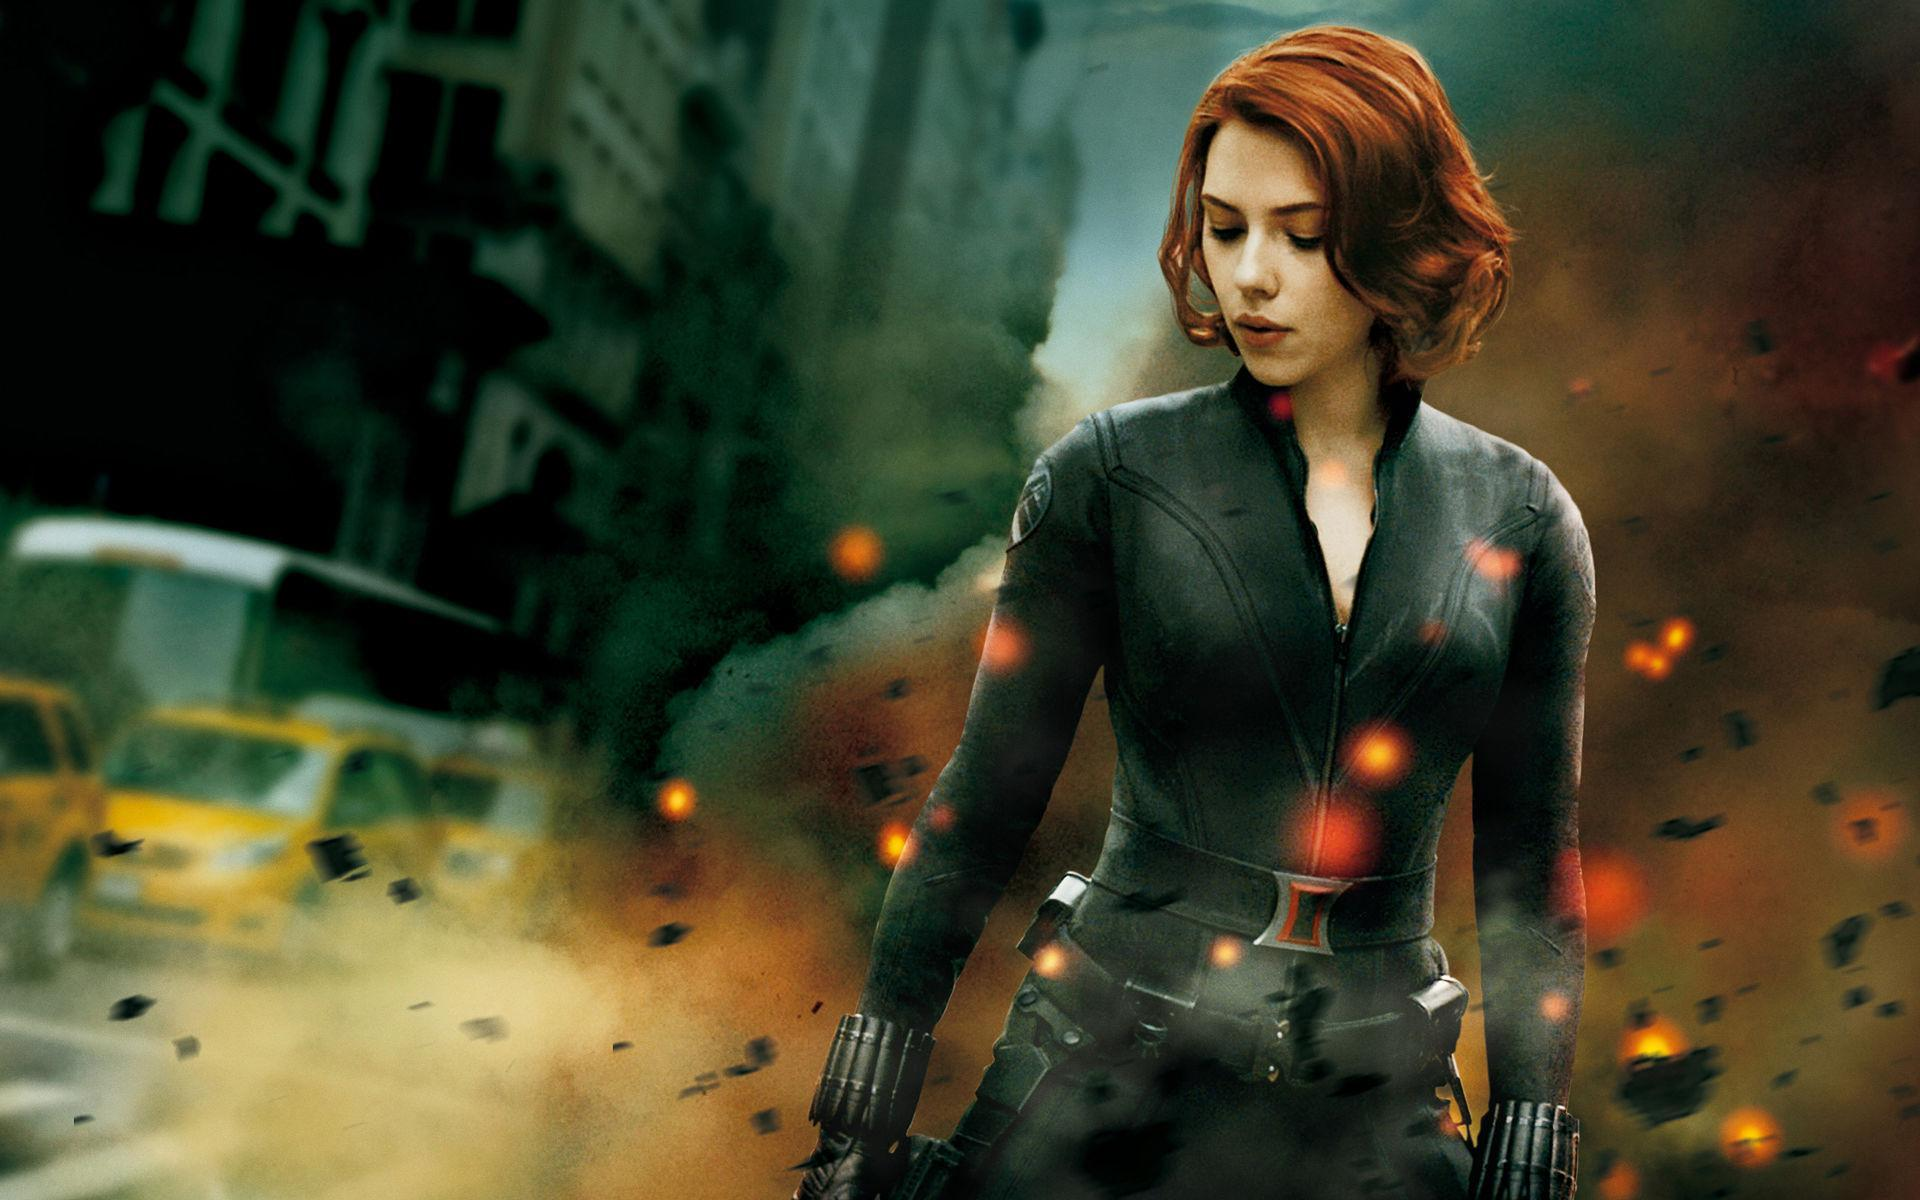 Which of the following has been an alias of Black Widow's?